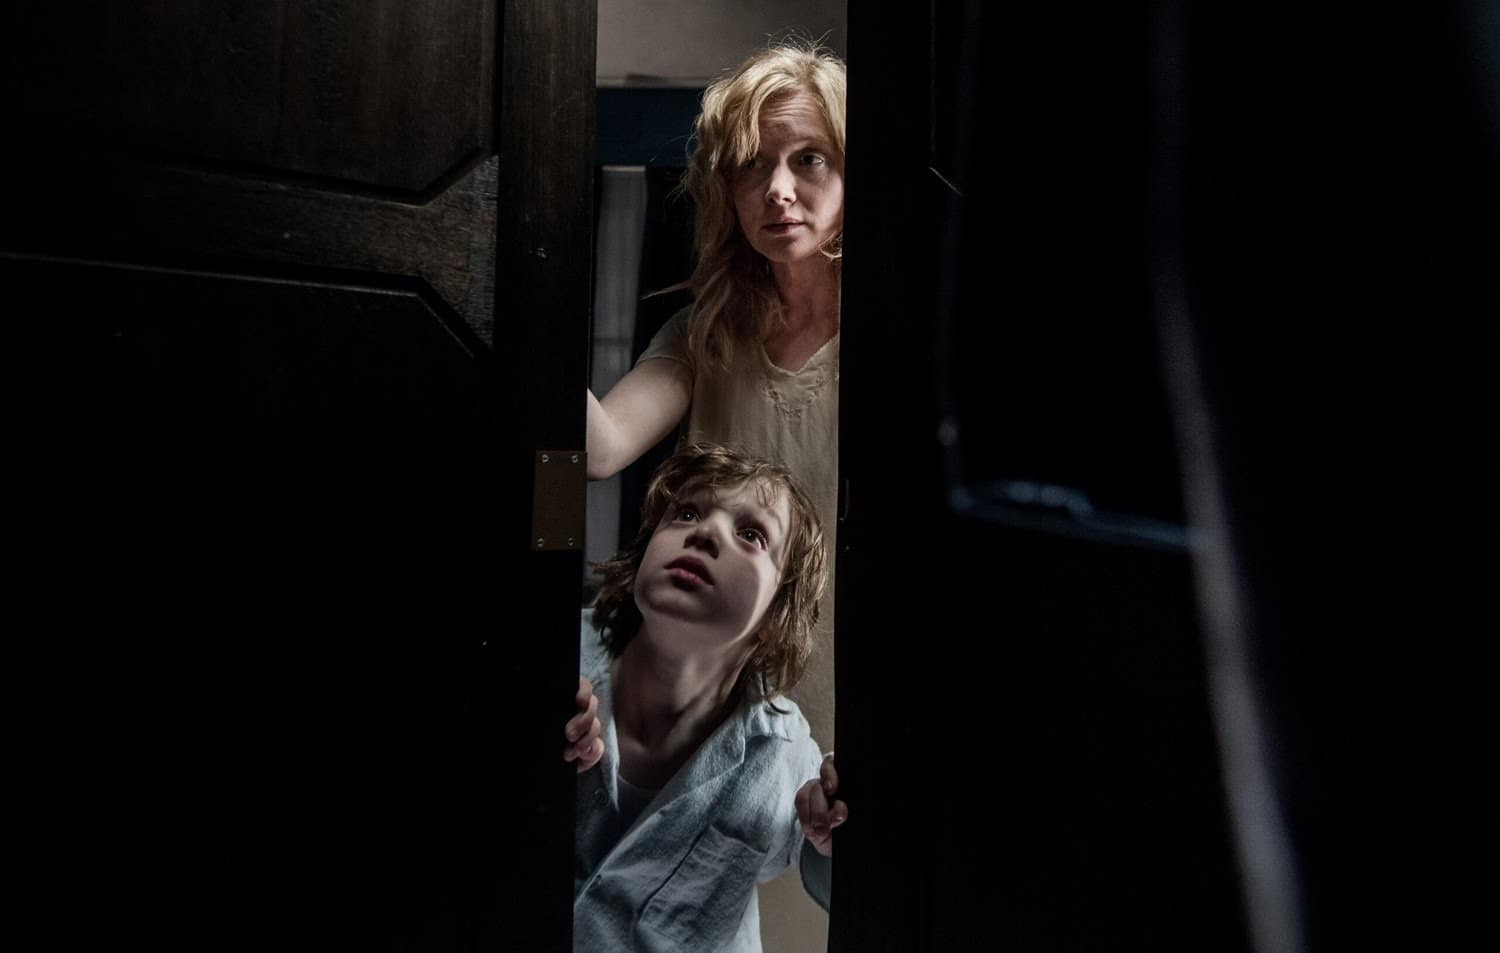 film reviews | movies | features | BRWC The Babadook: Review